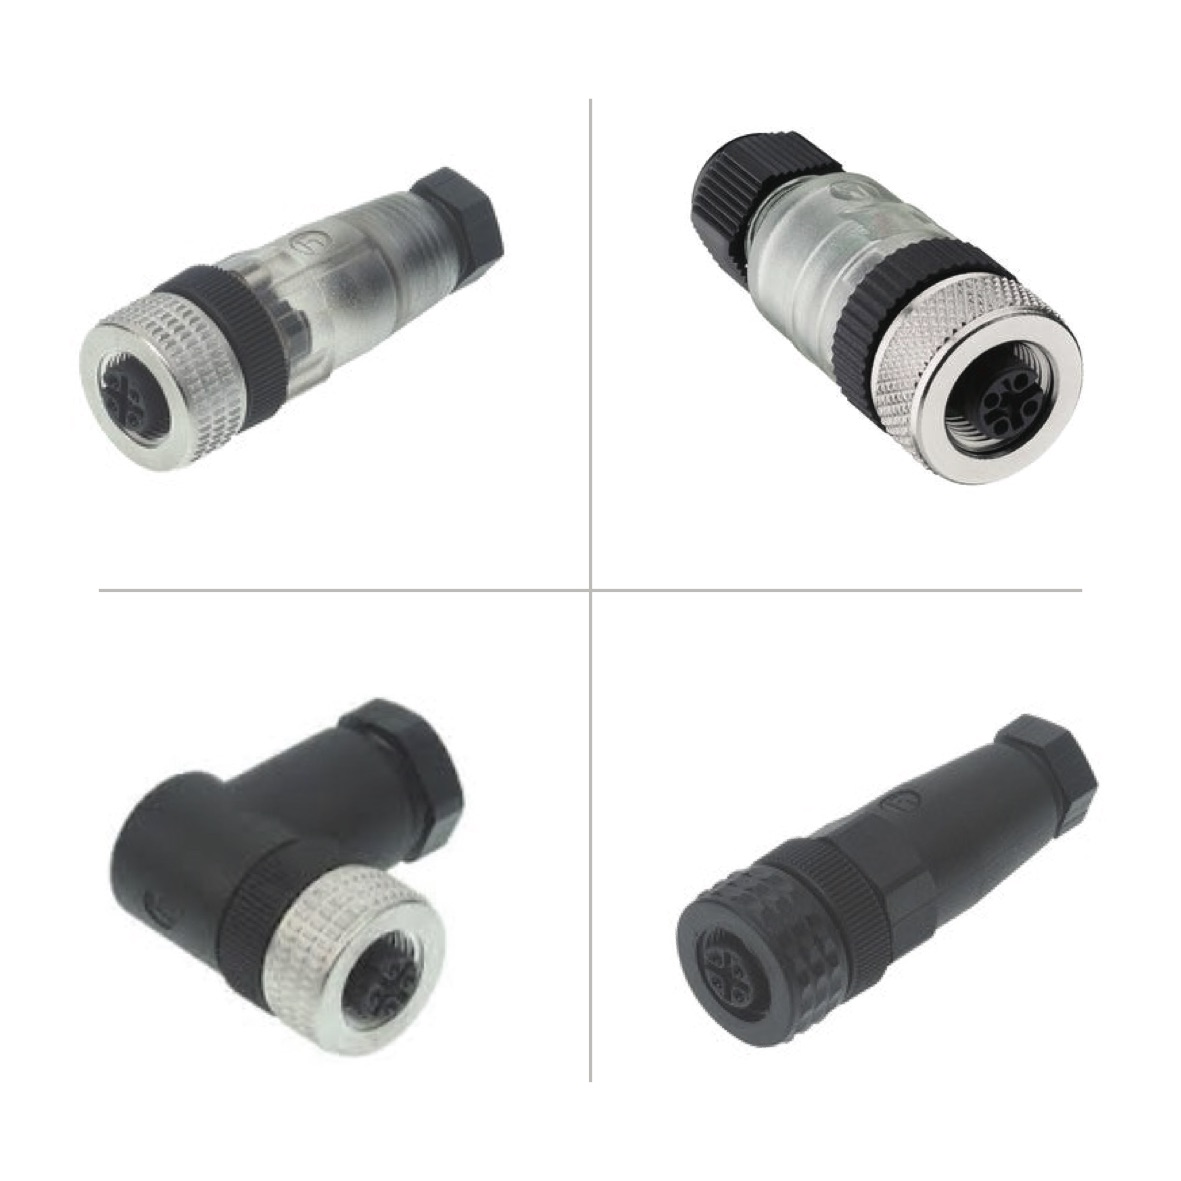 M12 Cable Socket